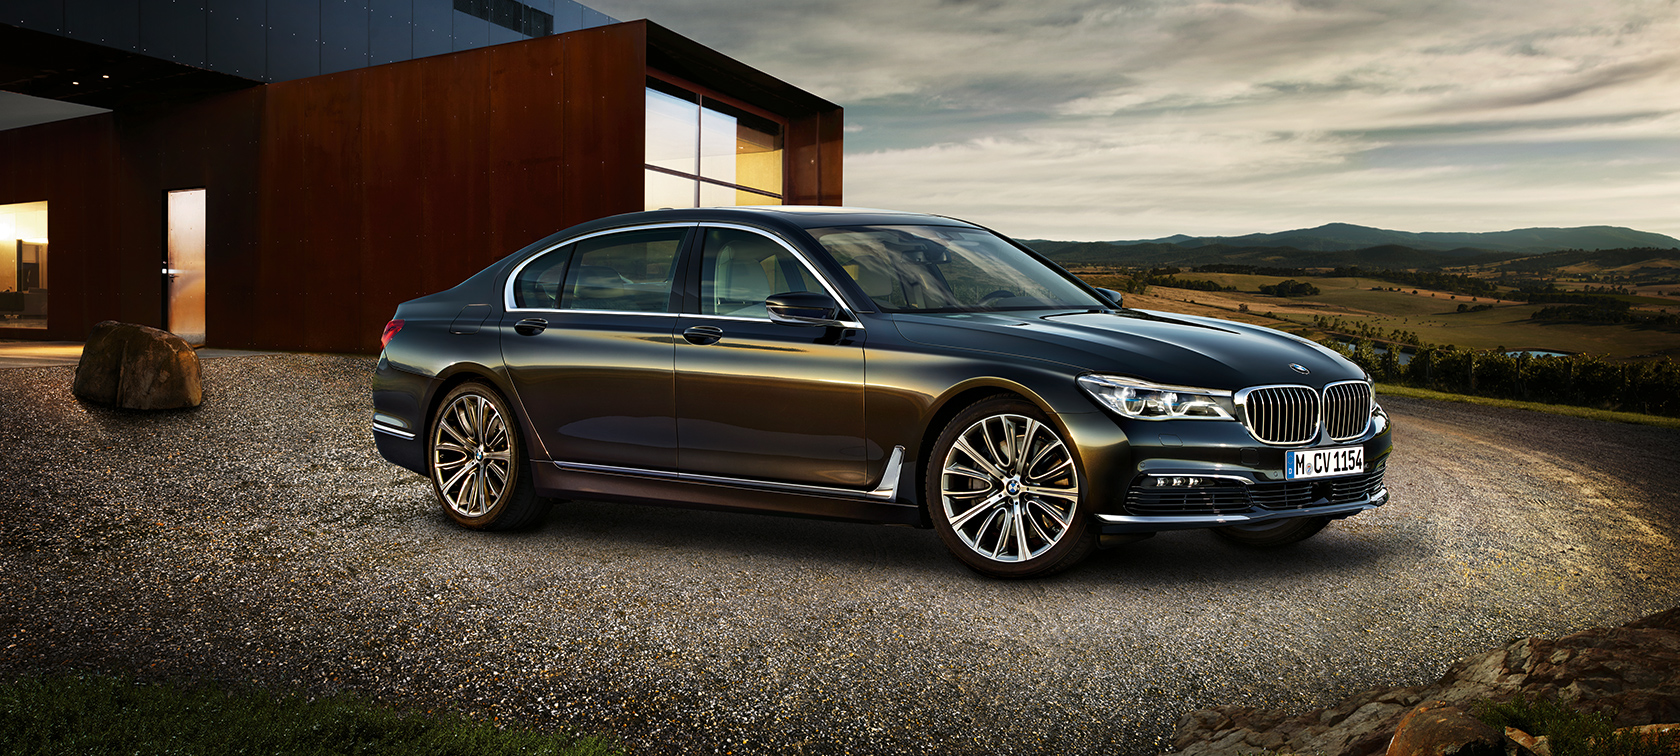 Bmw 7 Series Best Luxury Cars: BMW 7 Series Sedan